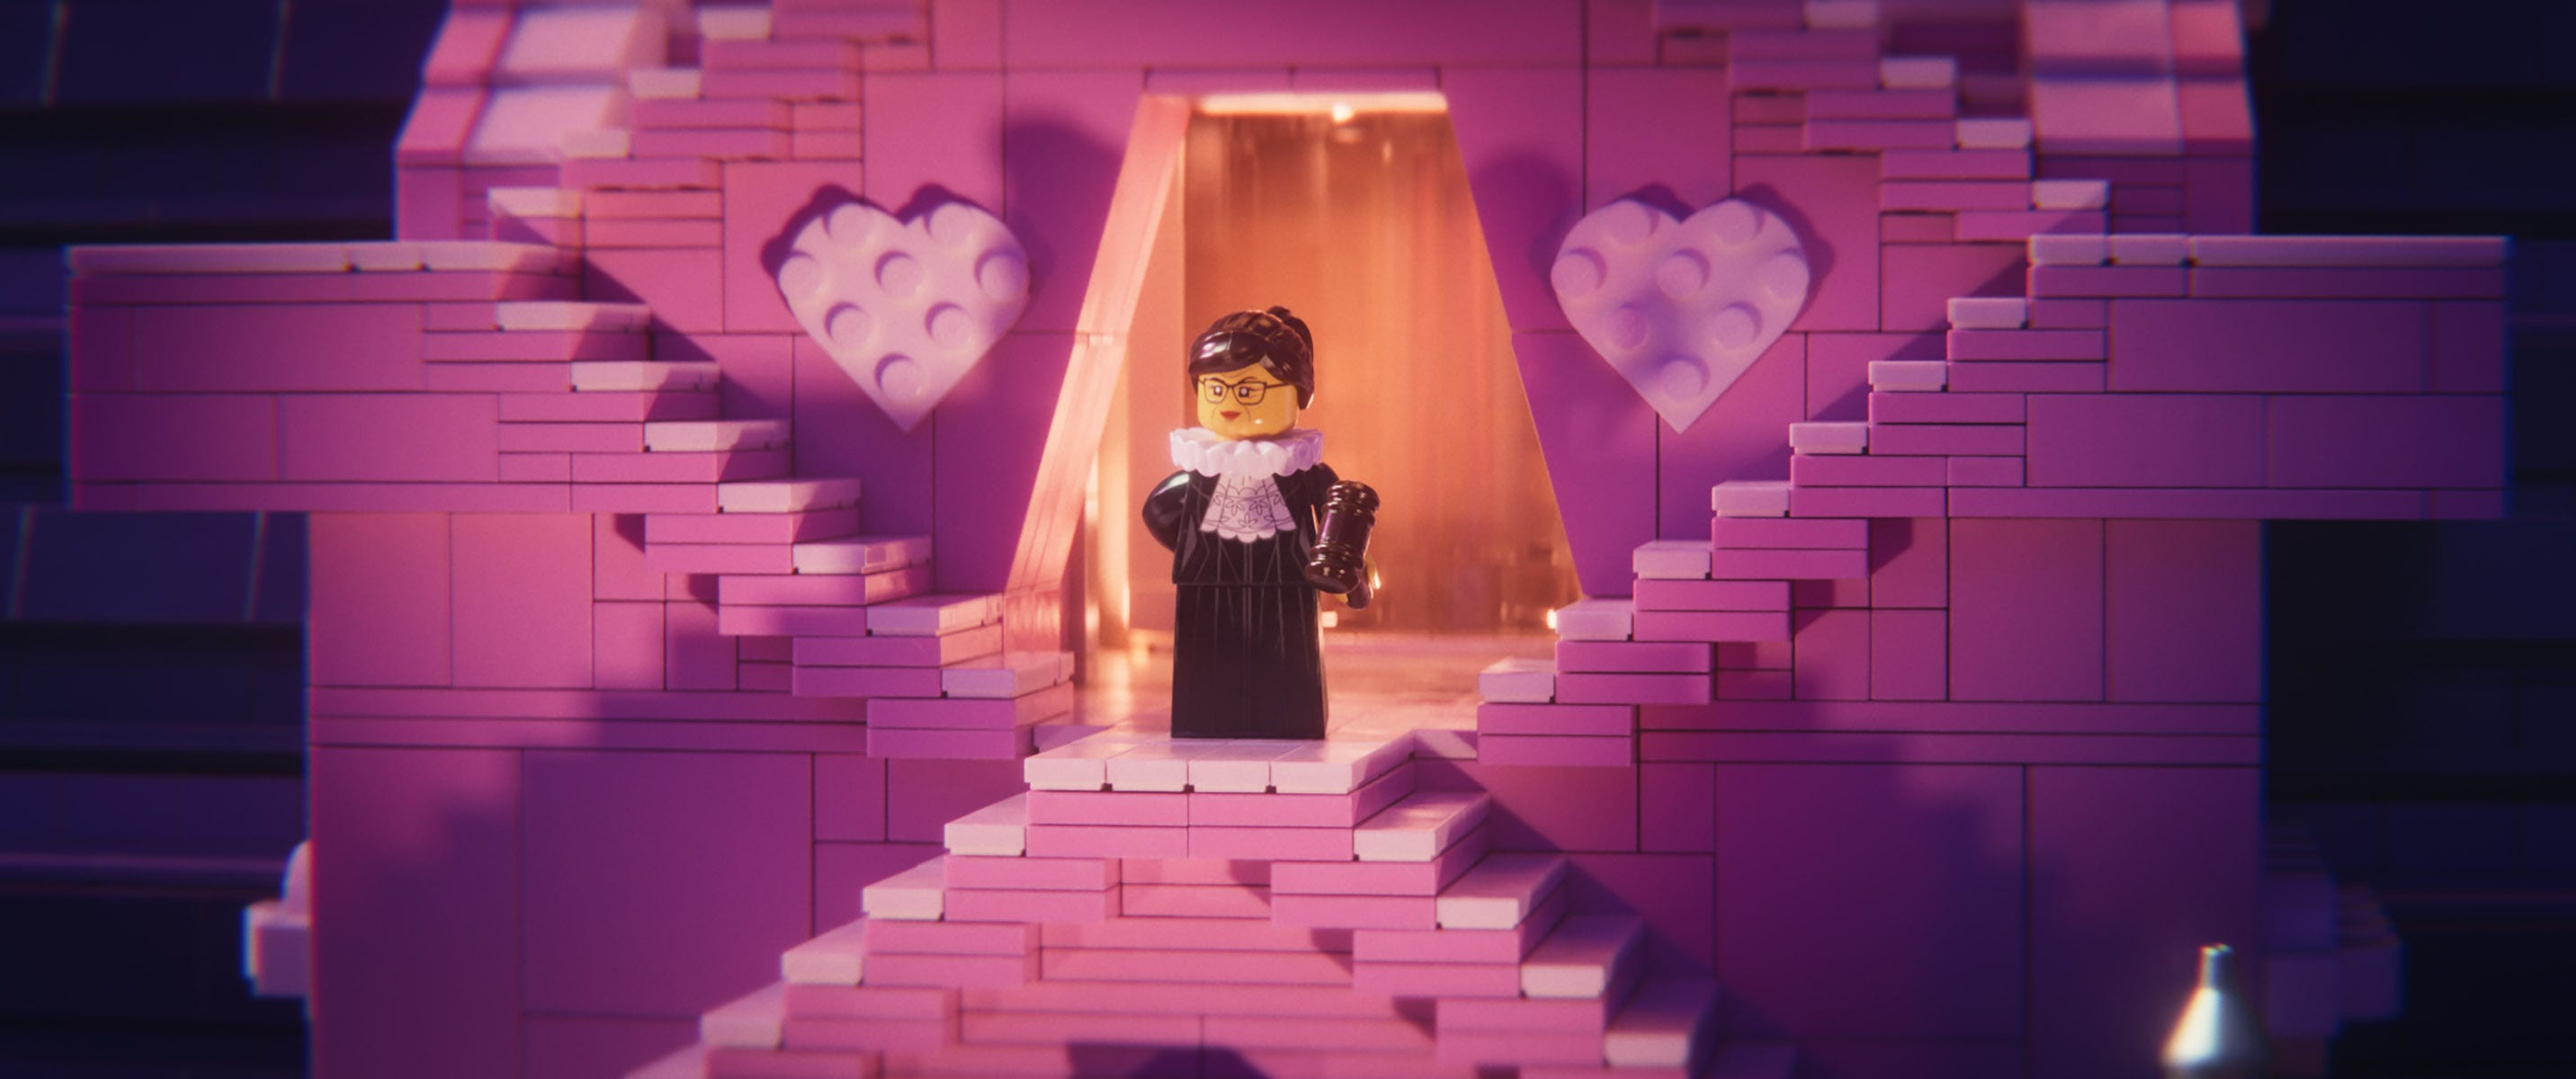 Ruth Bader Ginsburg makes supreme appearance in 'Lego Movie 2'